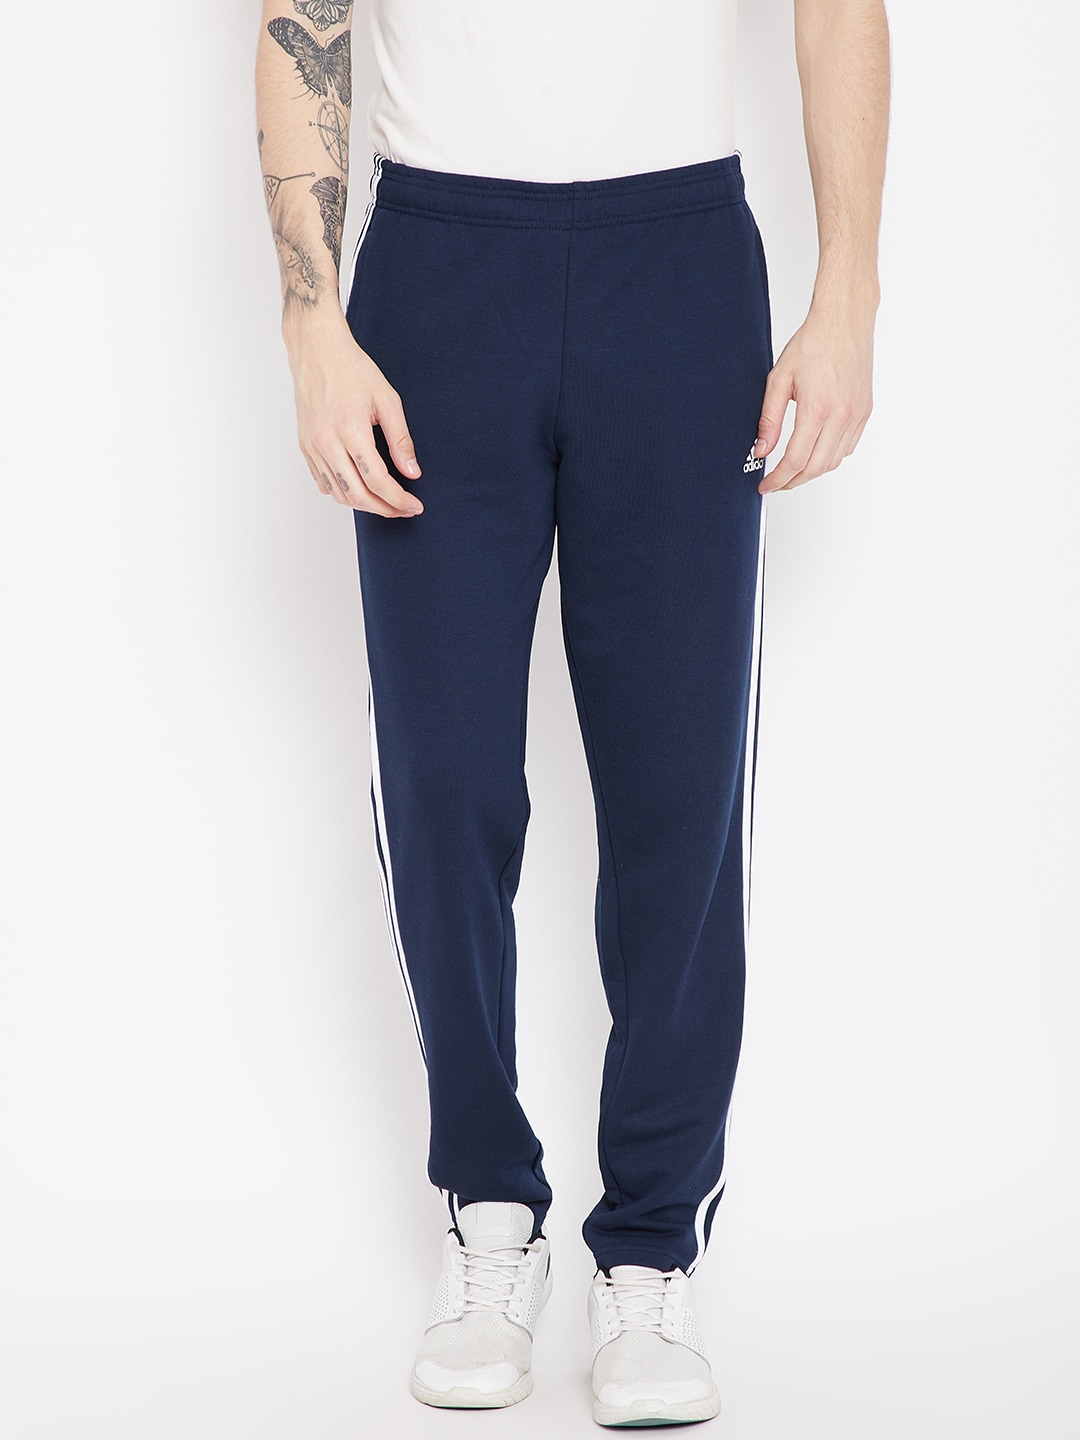 95ff3f5f955c Adidas Climacool Track Pants Pants Track Pantssuits Sports Shoes - Buy  Adidas Climacool Track Pants Pants Track Pantssuits Sports Shoes online in  India